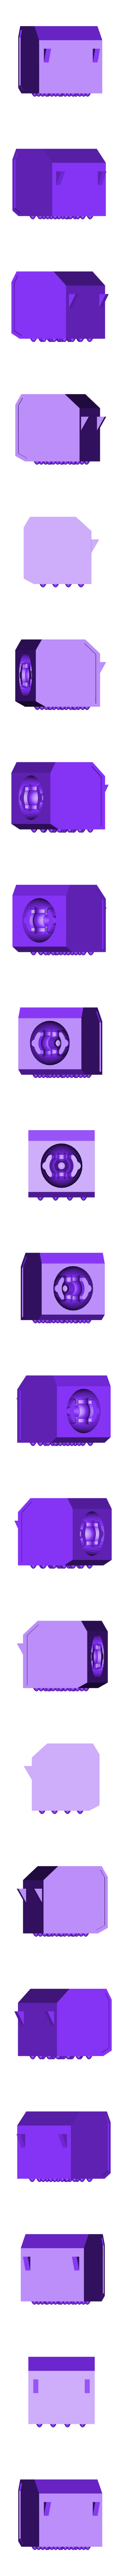 Shoulder_Rocket_Full_new_Joint.stl Download free STL file Ball Joint Mad Cat Mech • 3D printable object, mrhers2